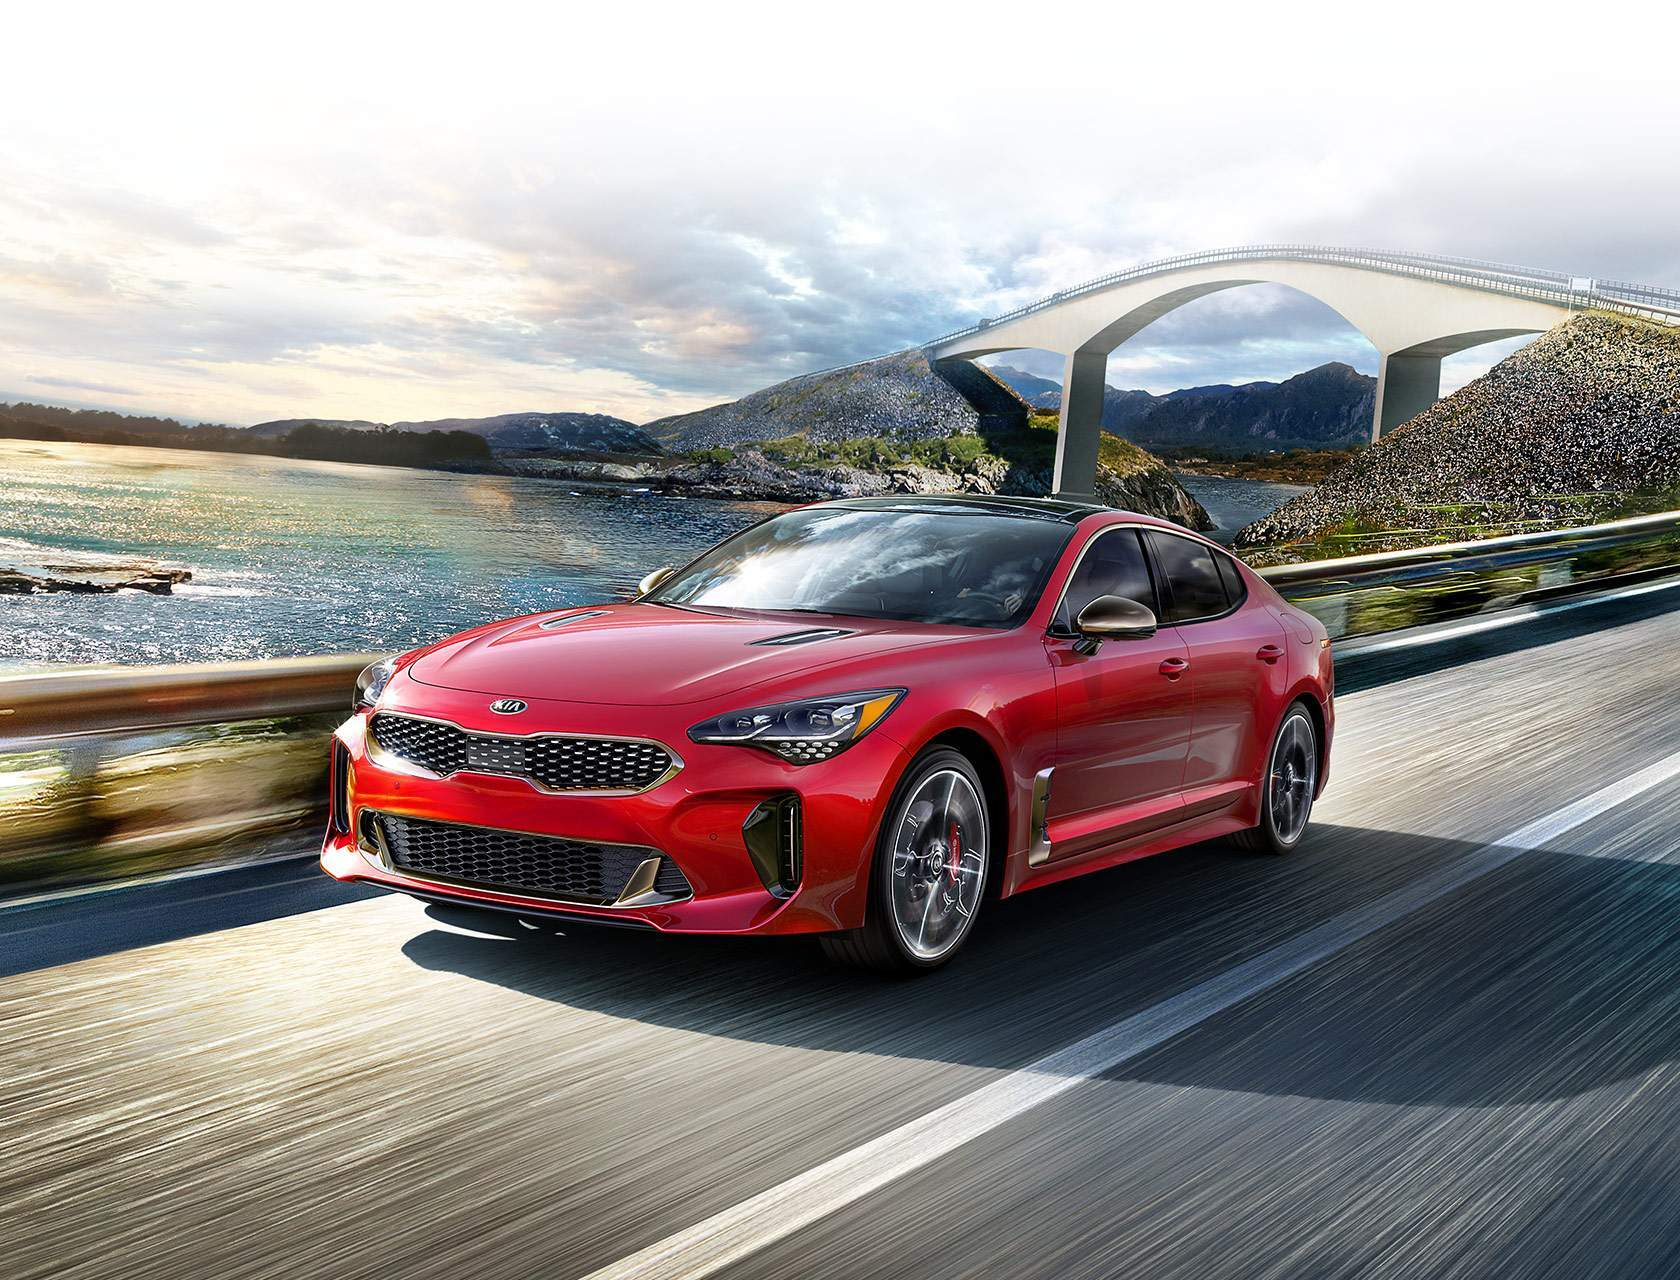 2018 Kia Stinger in Toms River, NJ